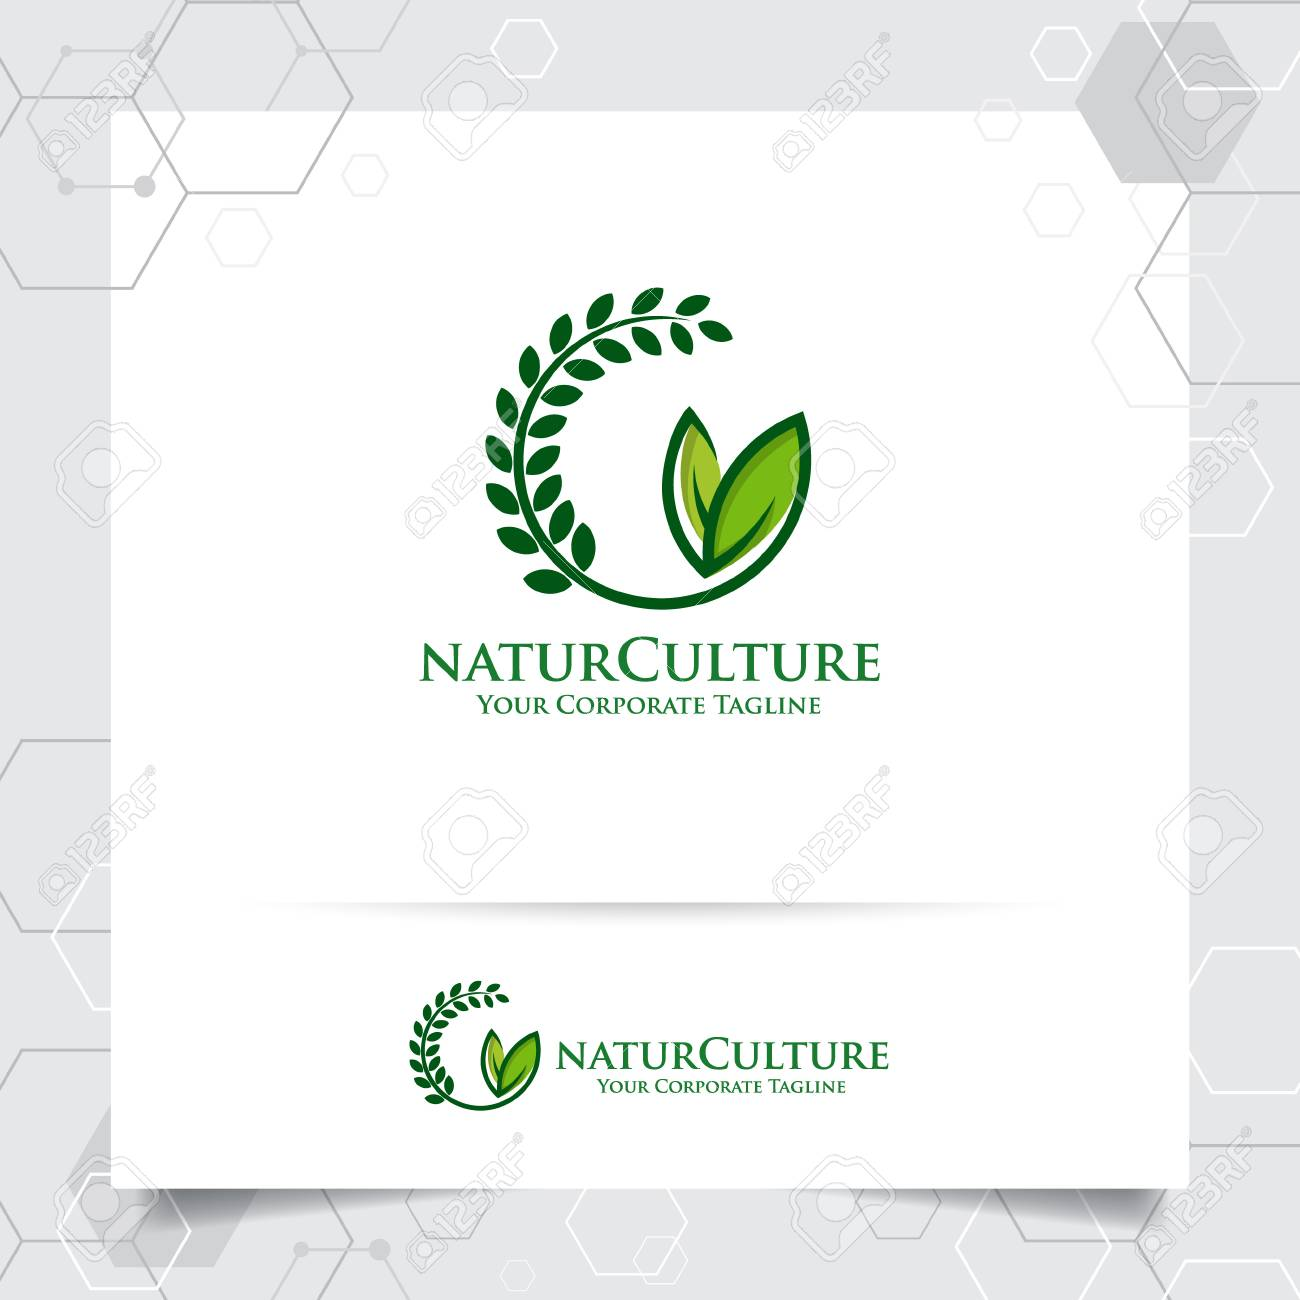 Agriculture logo design with concept of grain icon and plant